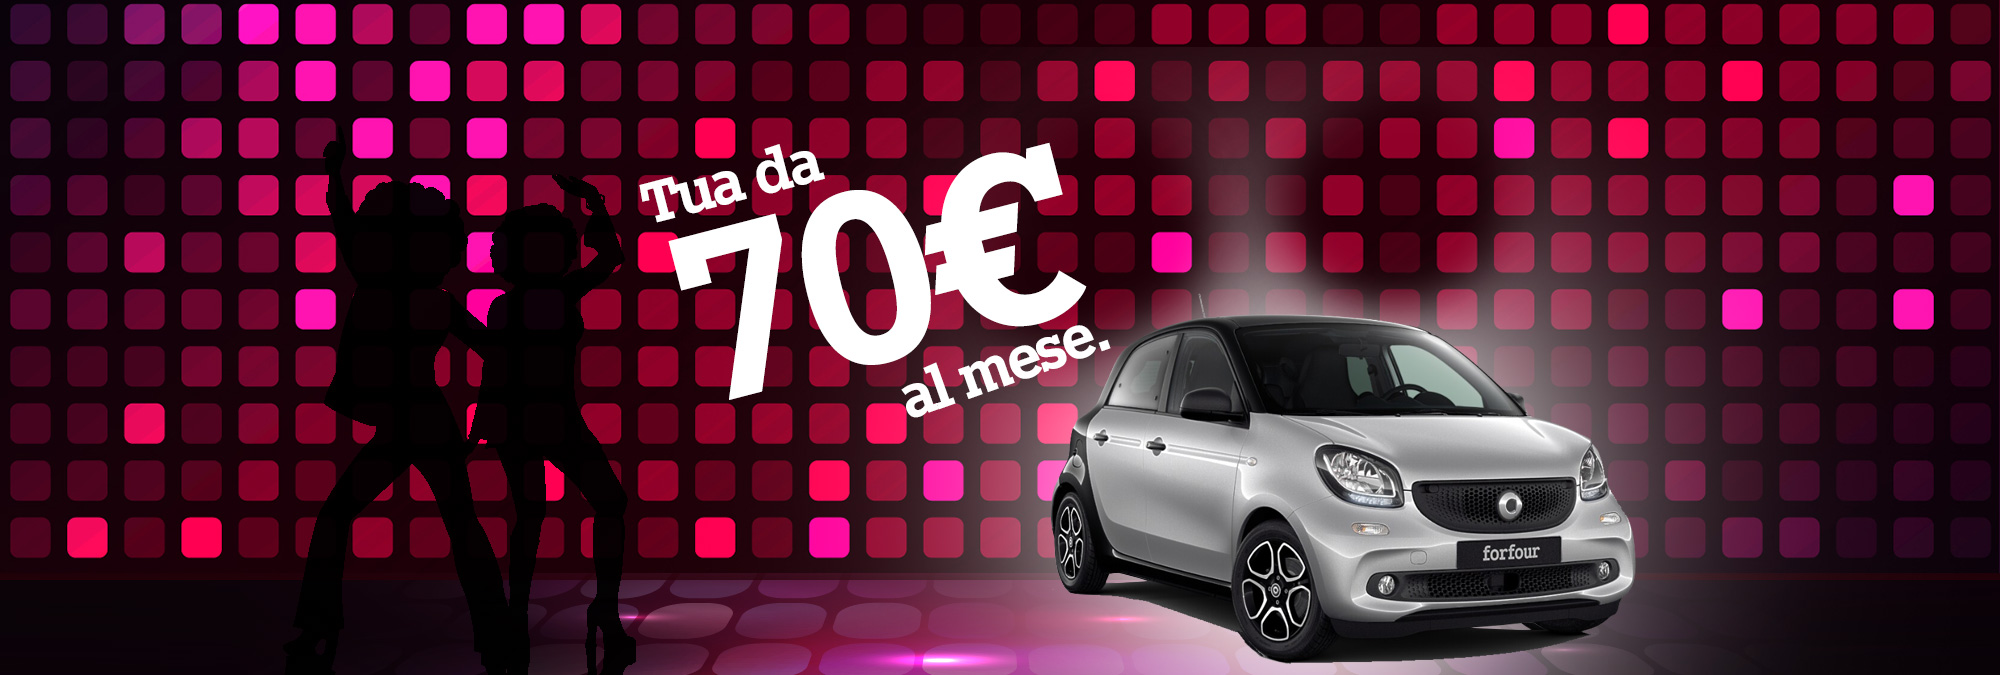 Forfour _70euromese